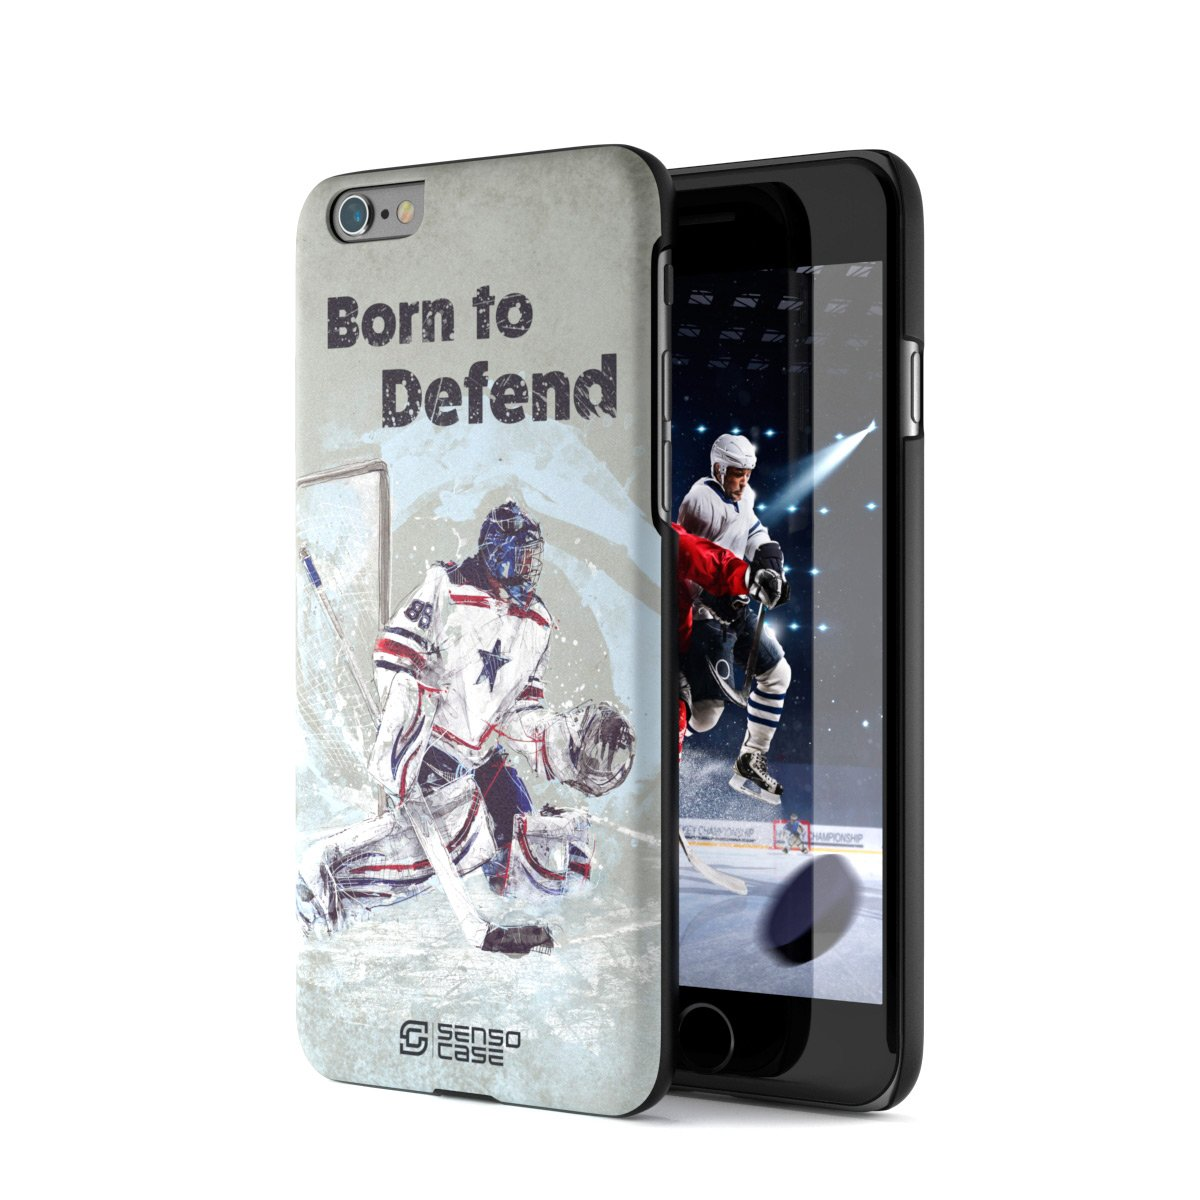 iPhone 6 Case, Born For Hockey. Sensocase Premium Extreme Sports Unique Designer Tough Shell Thin Cover. Luxury, Anti-Fingerprint, Anti-Scratch Stylish Slim Protective Apple Phone 6S Case. by SENSOCASE